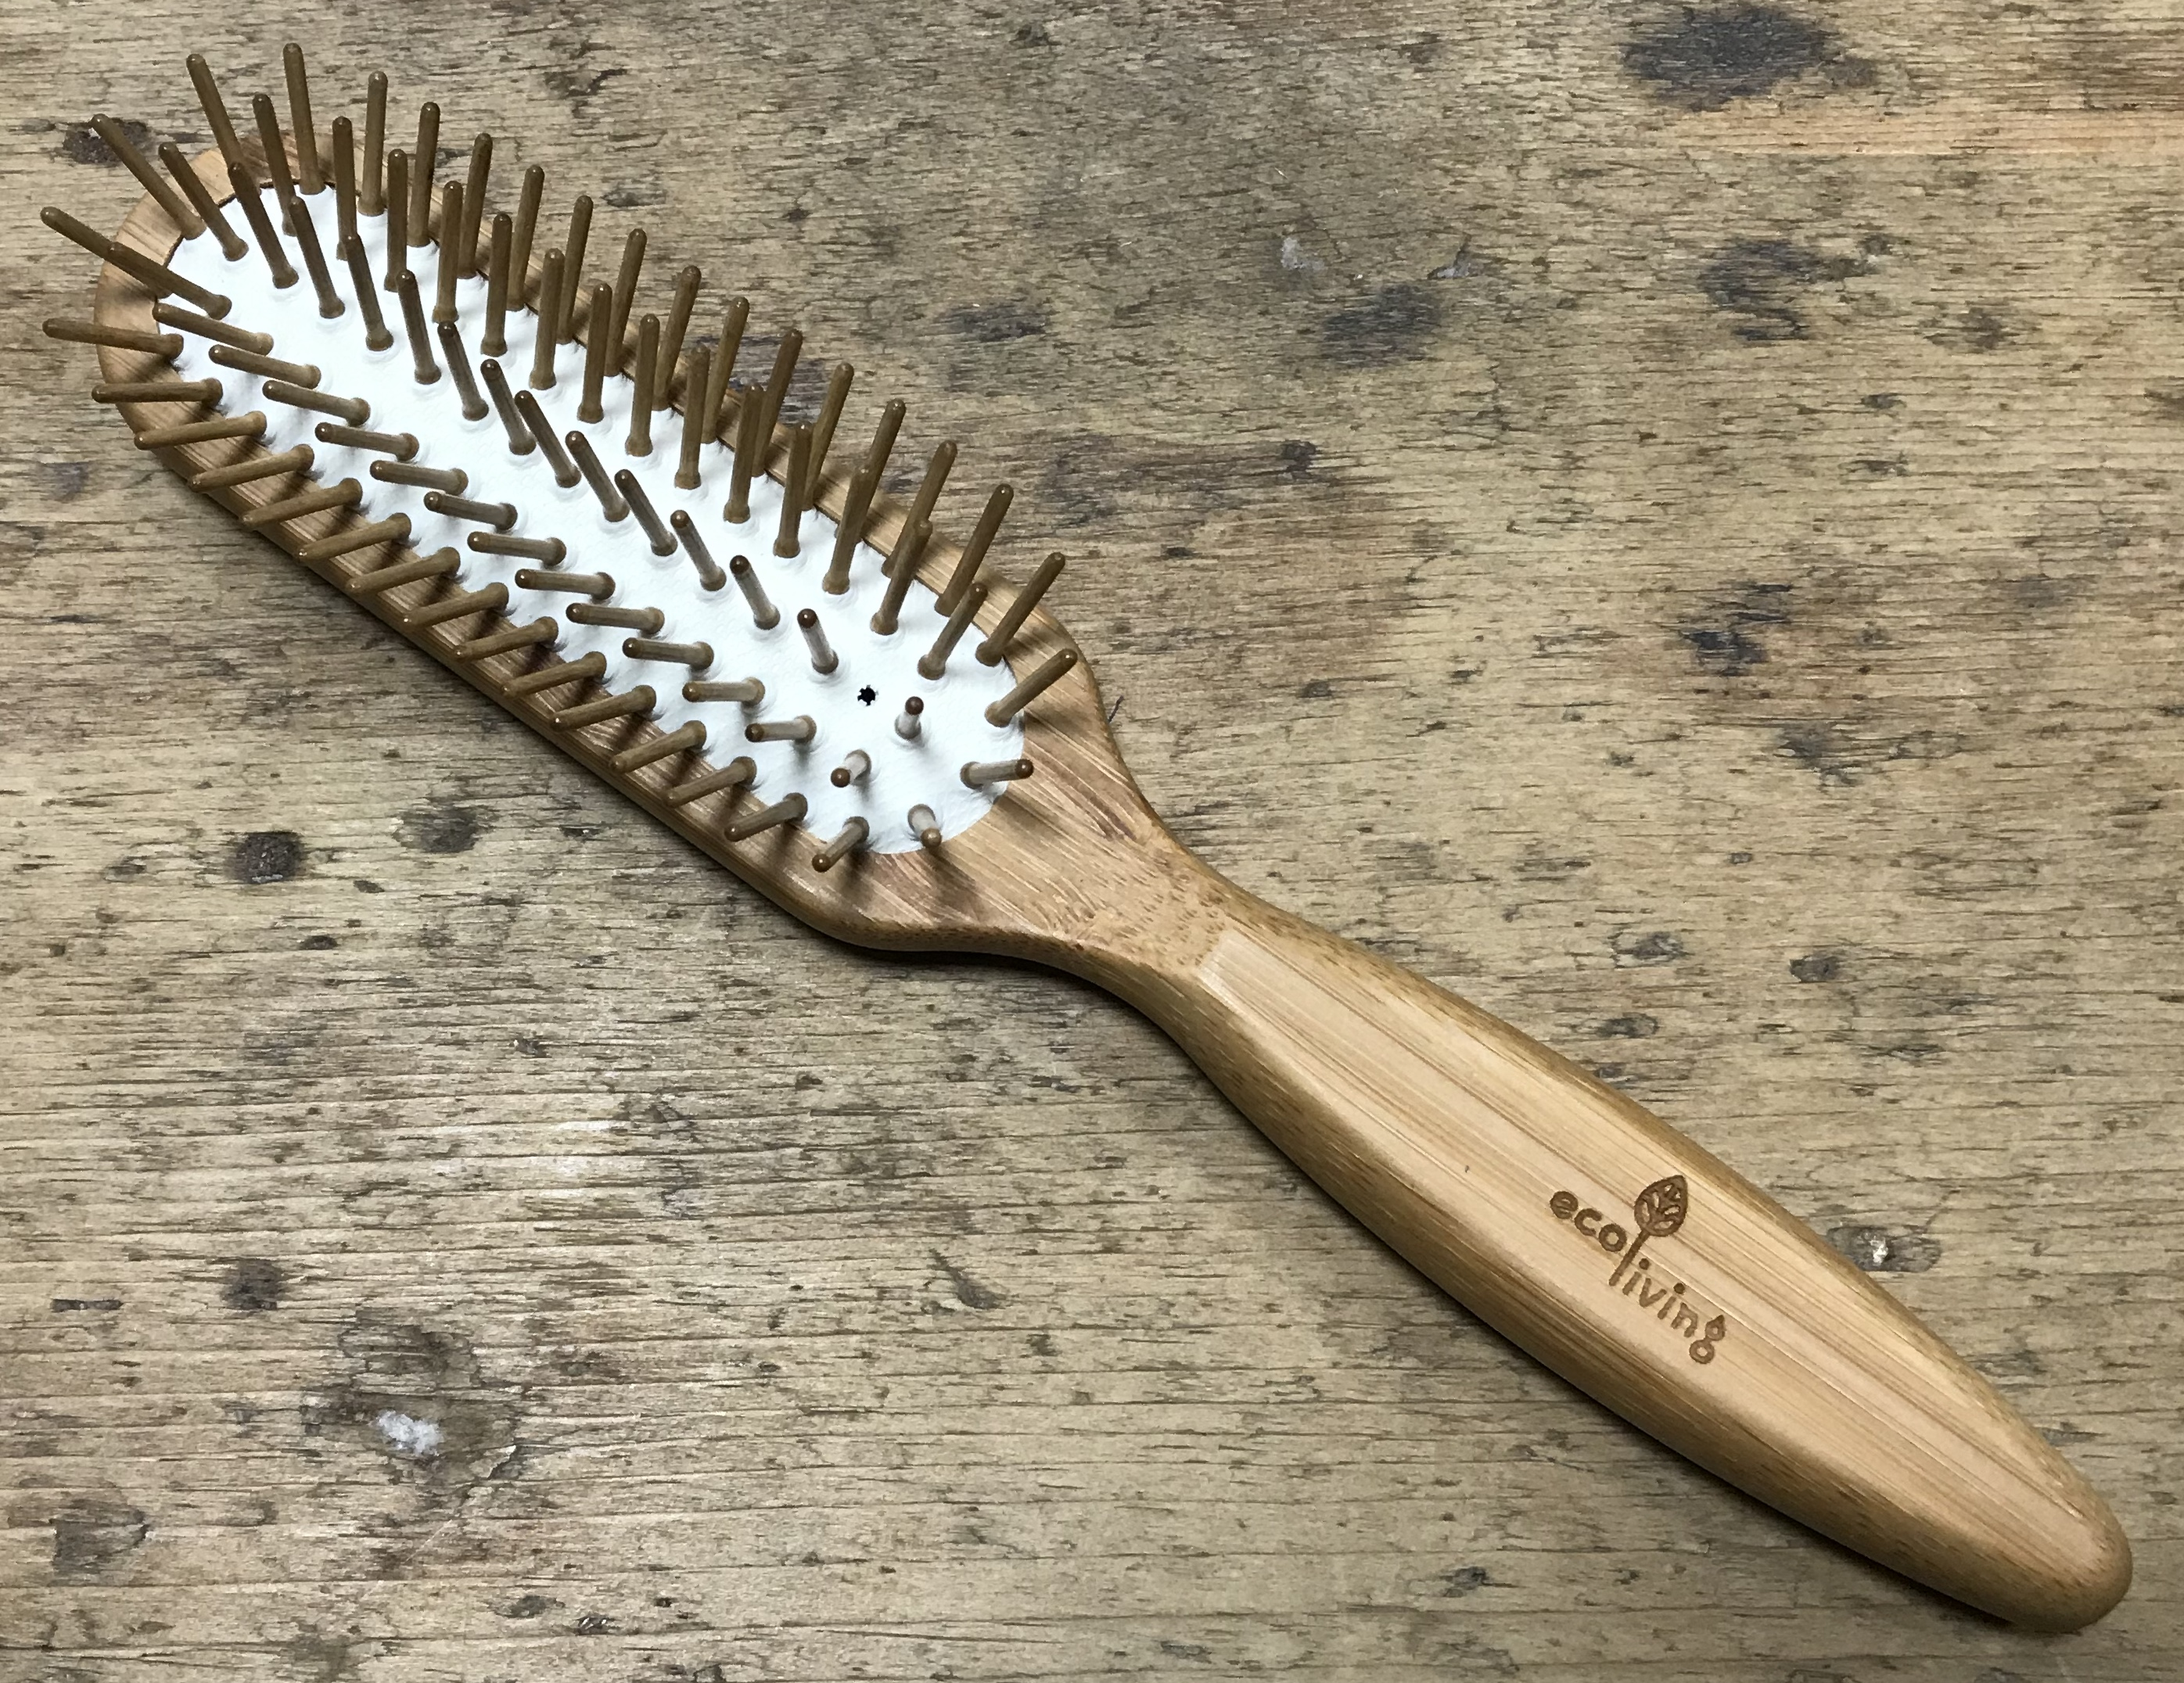 Bamboo Hairbrush - With Wooden Pins